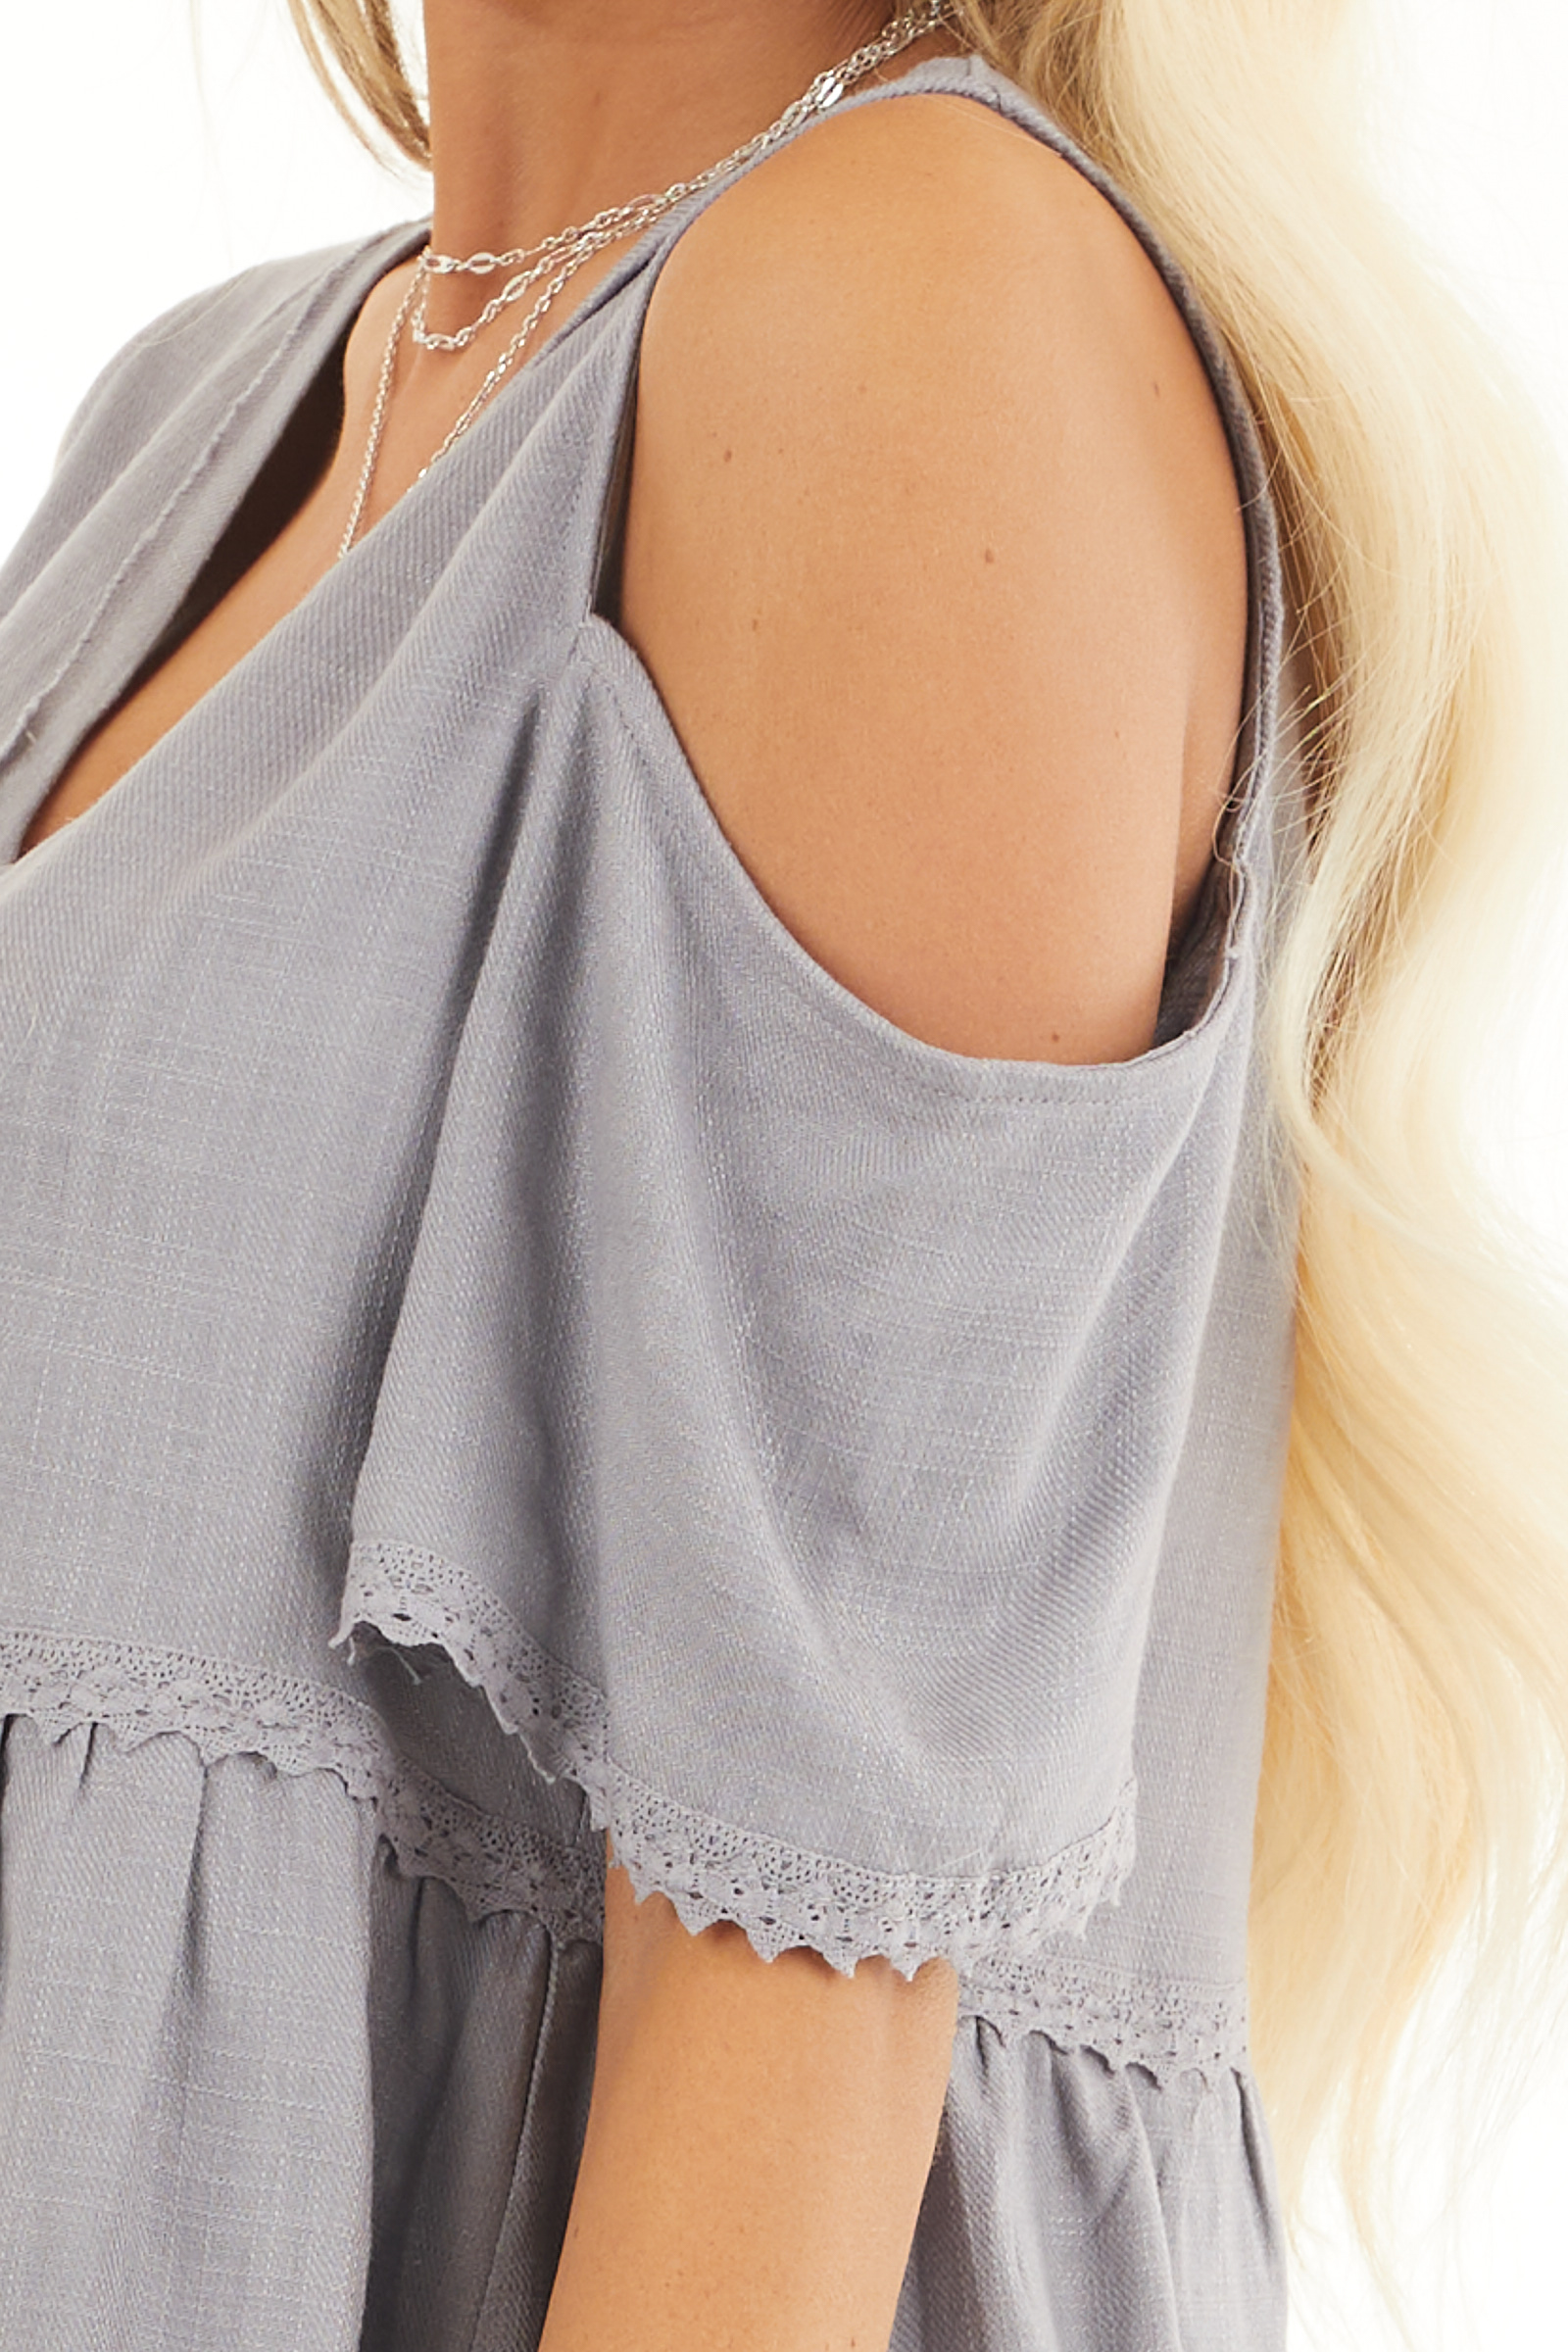 Dusty Lilac Two Toned Cold Shoulder Babydoll Top with Fringe detail